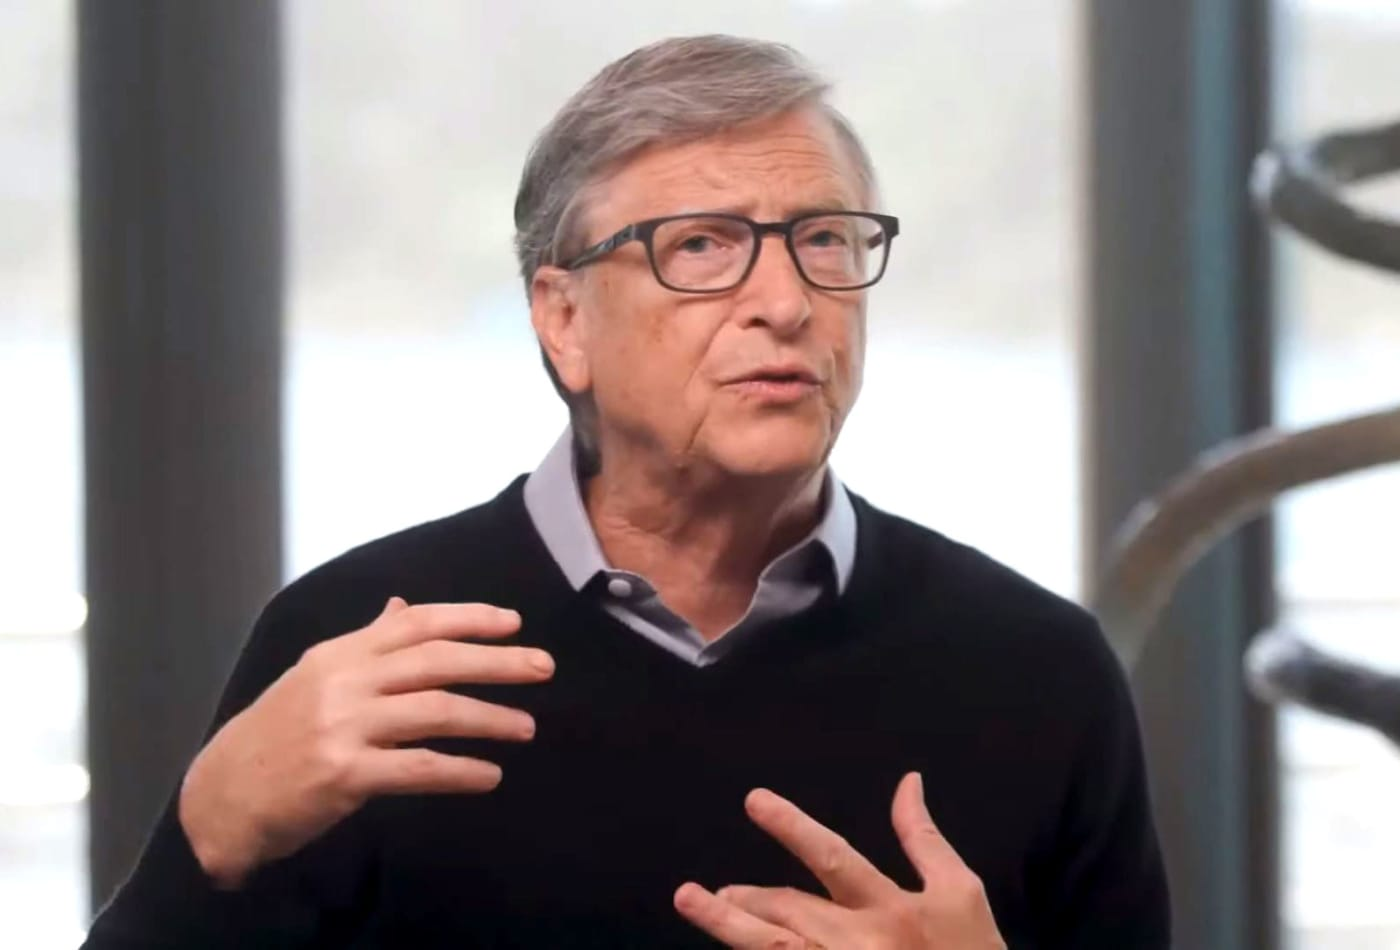 Bill Gates warns against coronavirus vaccine going to highest bidder — 'We'll have a deadlier pandemic'